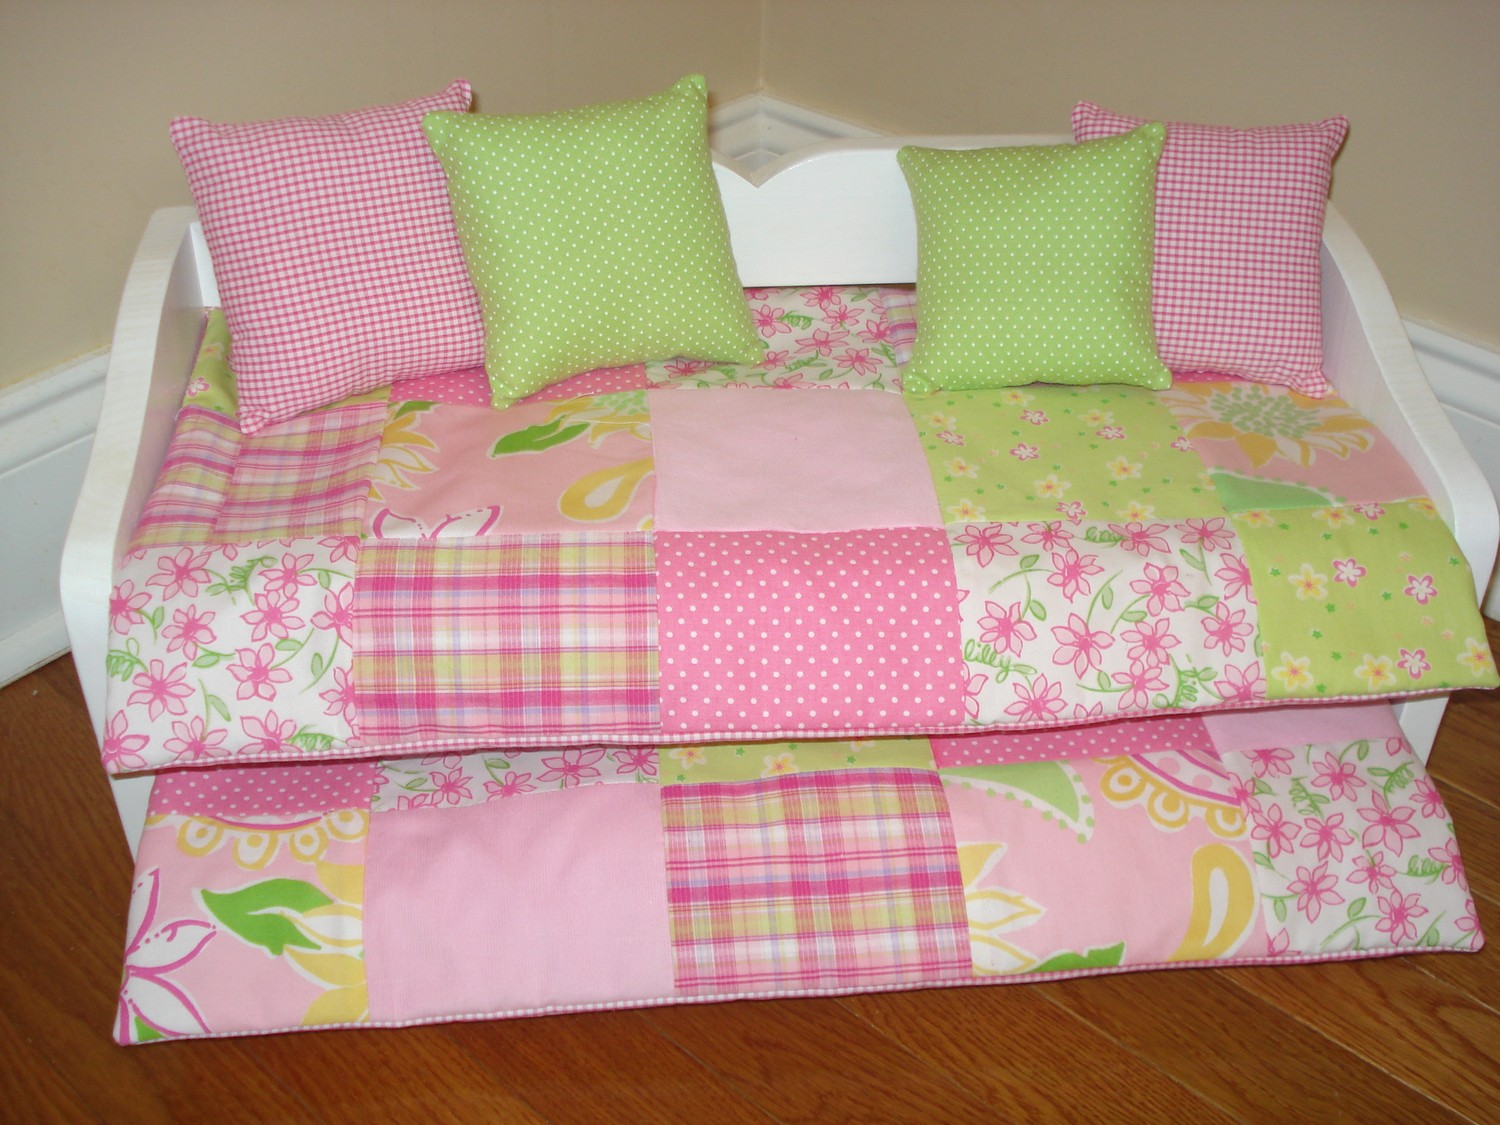 daybed bedding sets for girls photo 4